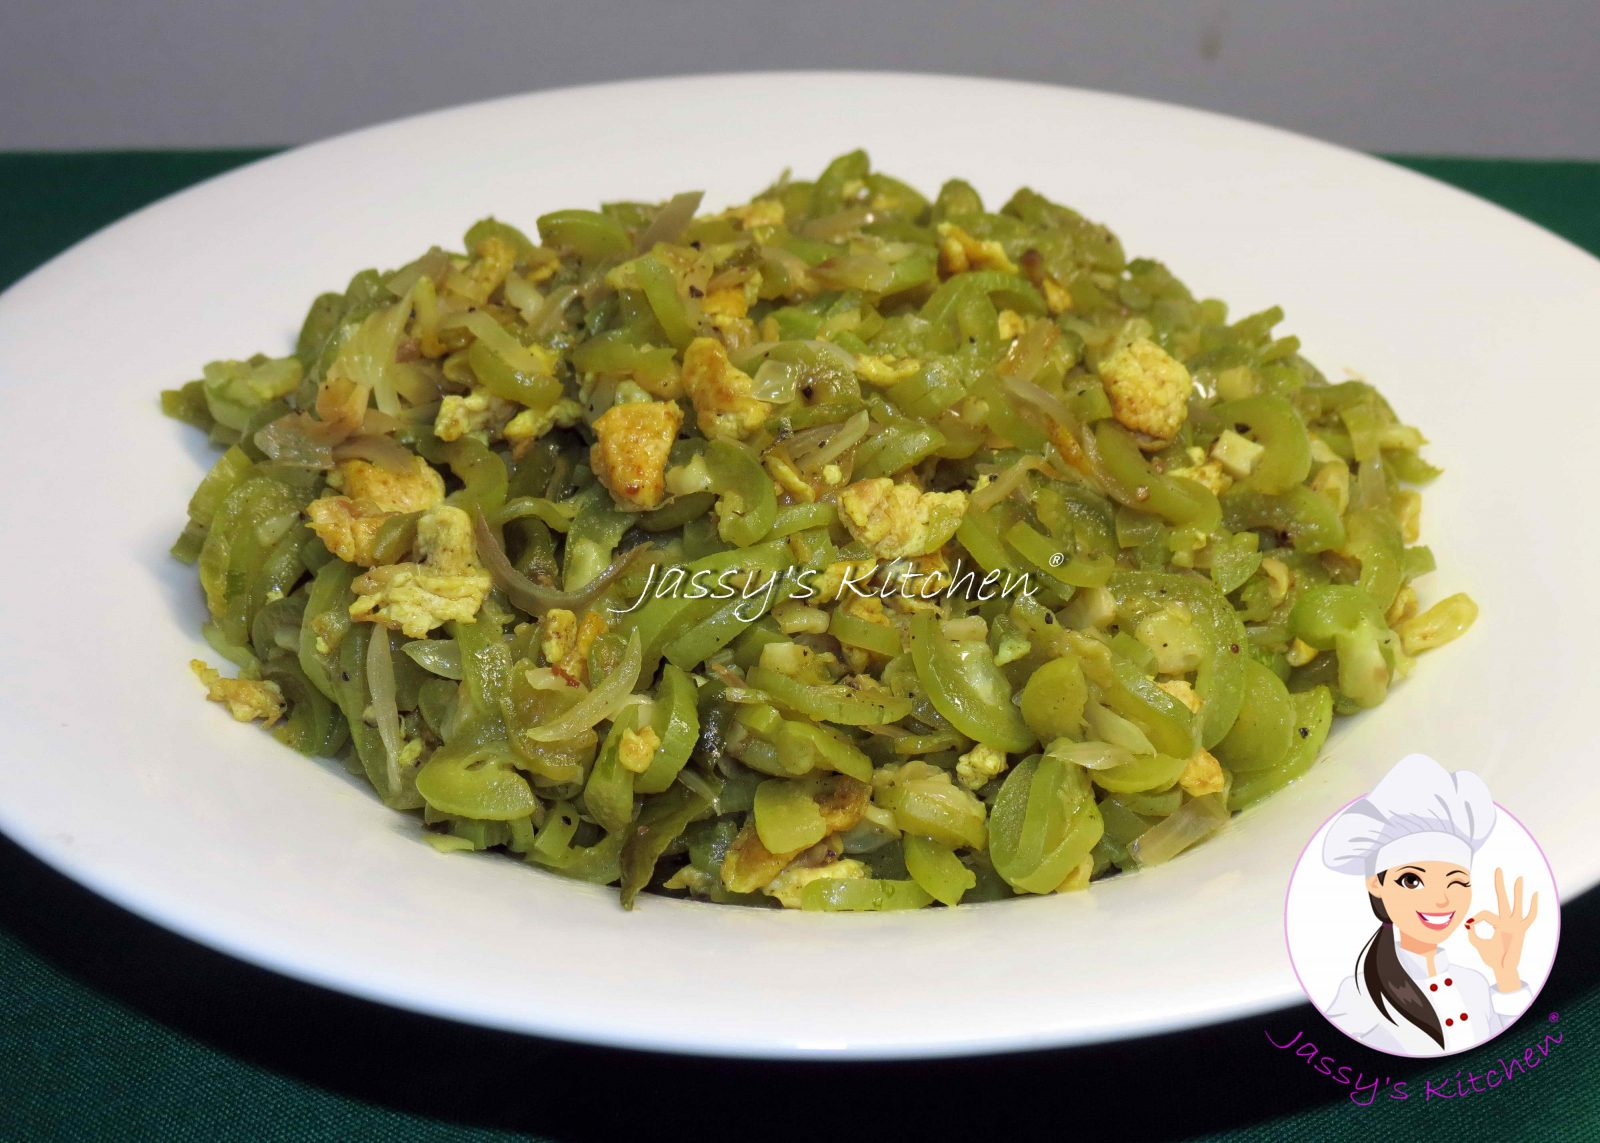 Chichinga Vaji with Egg from Jassy's Kitchen